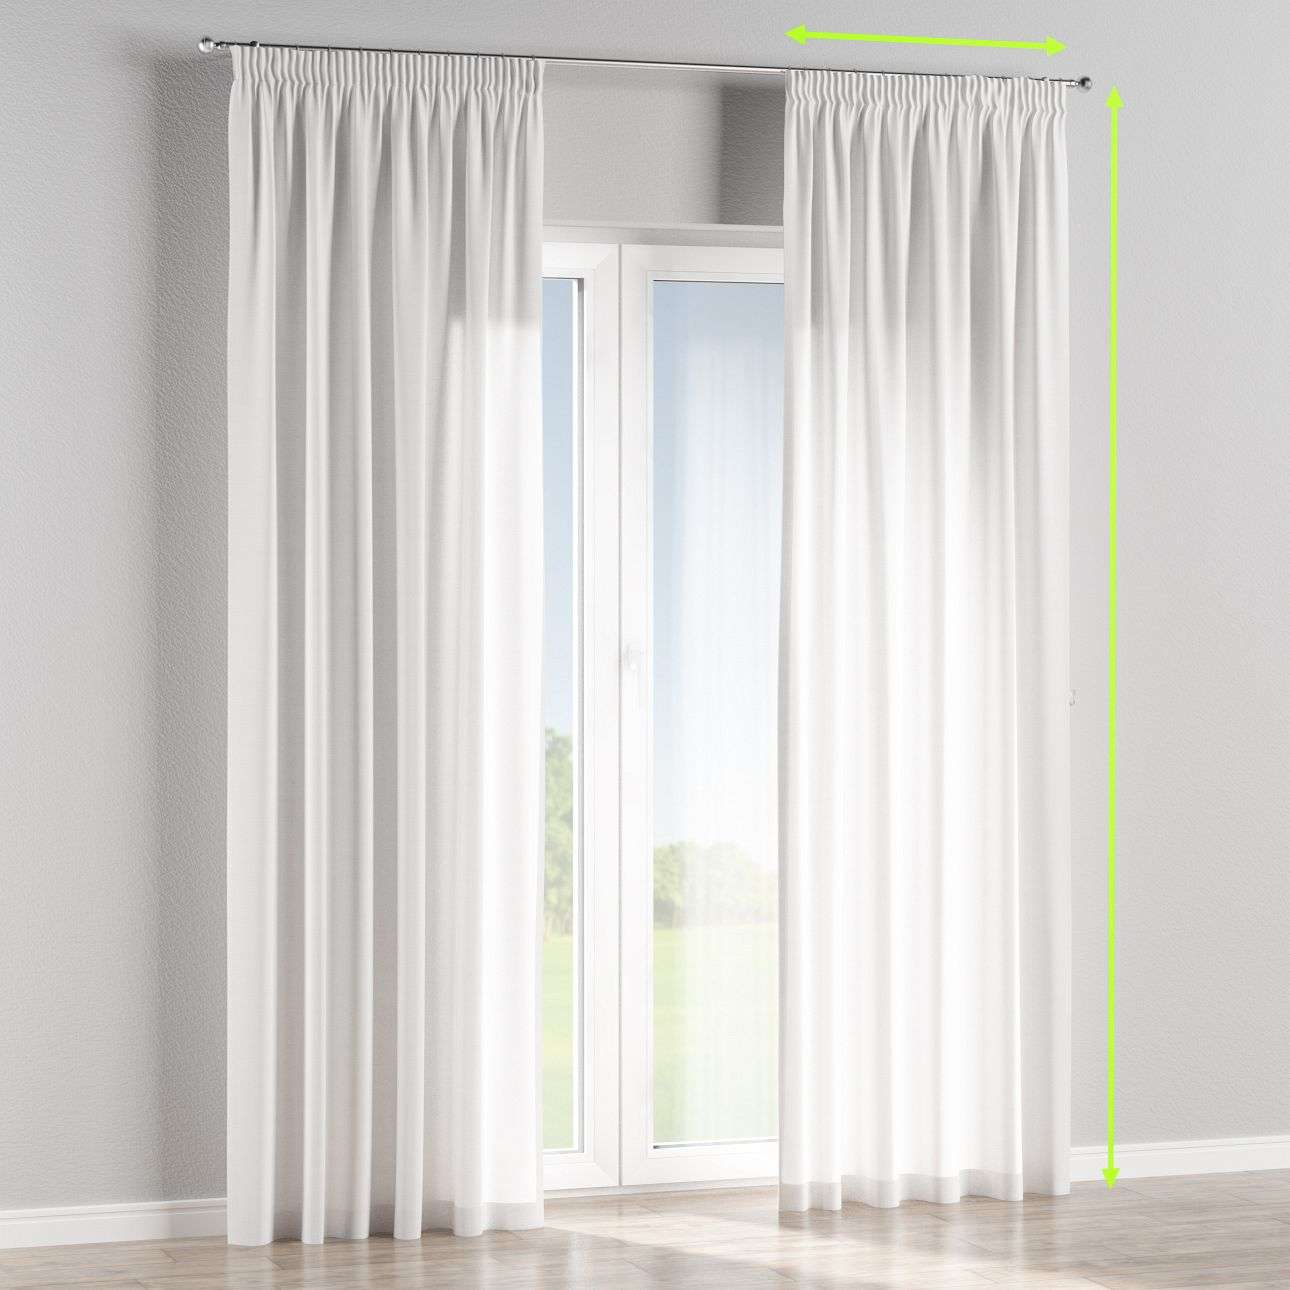 Pencil pleat lined curtains in collection Jupiter, fabric: 127-01